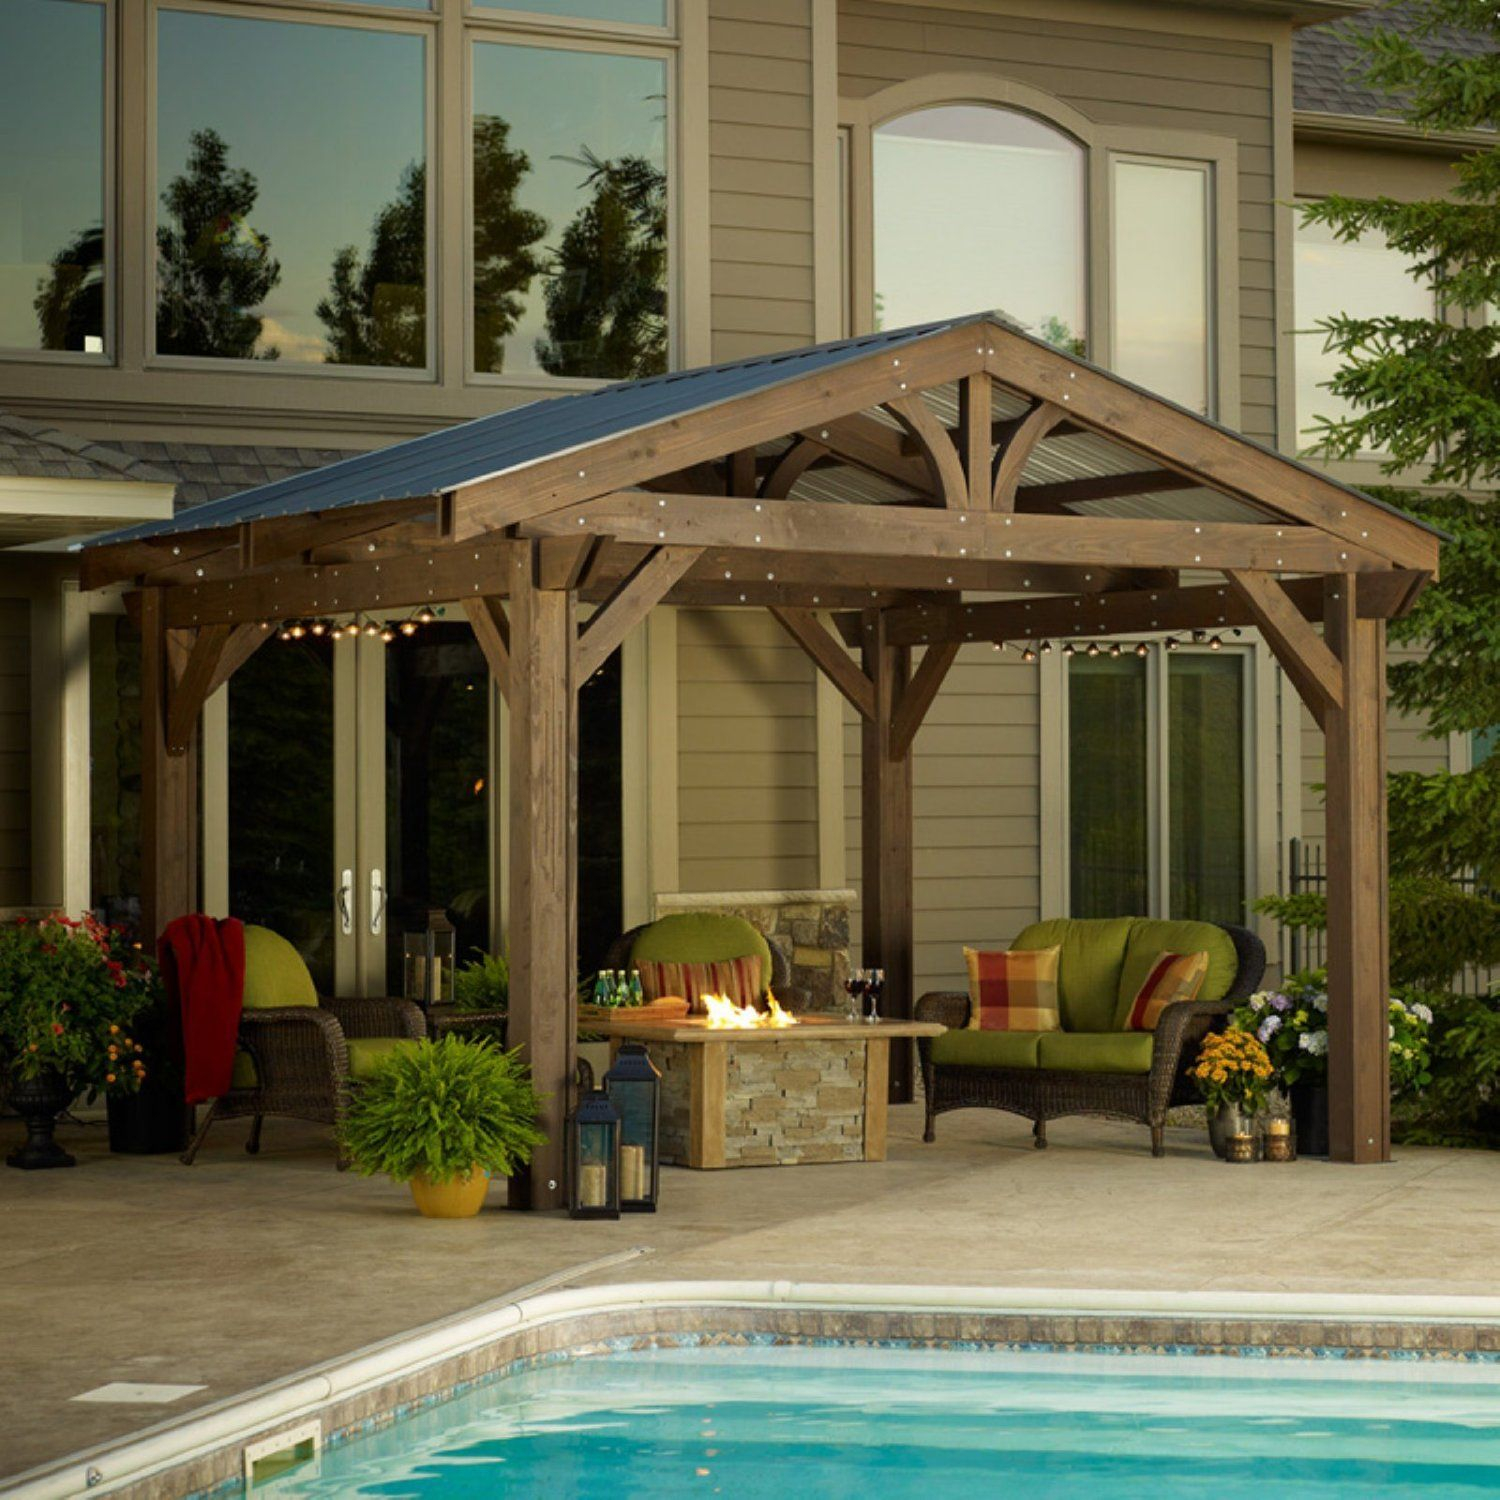 Beefy Wooden Pergola With Corrugated Metal Roof Outdoor in dimensions 1500 X 1500